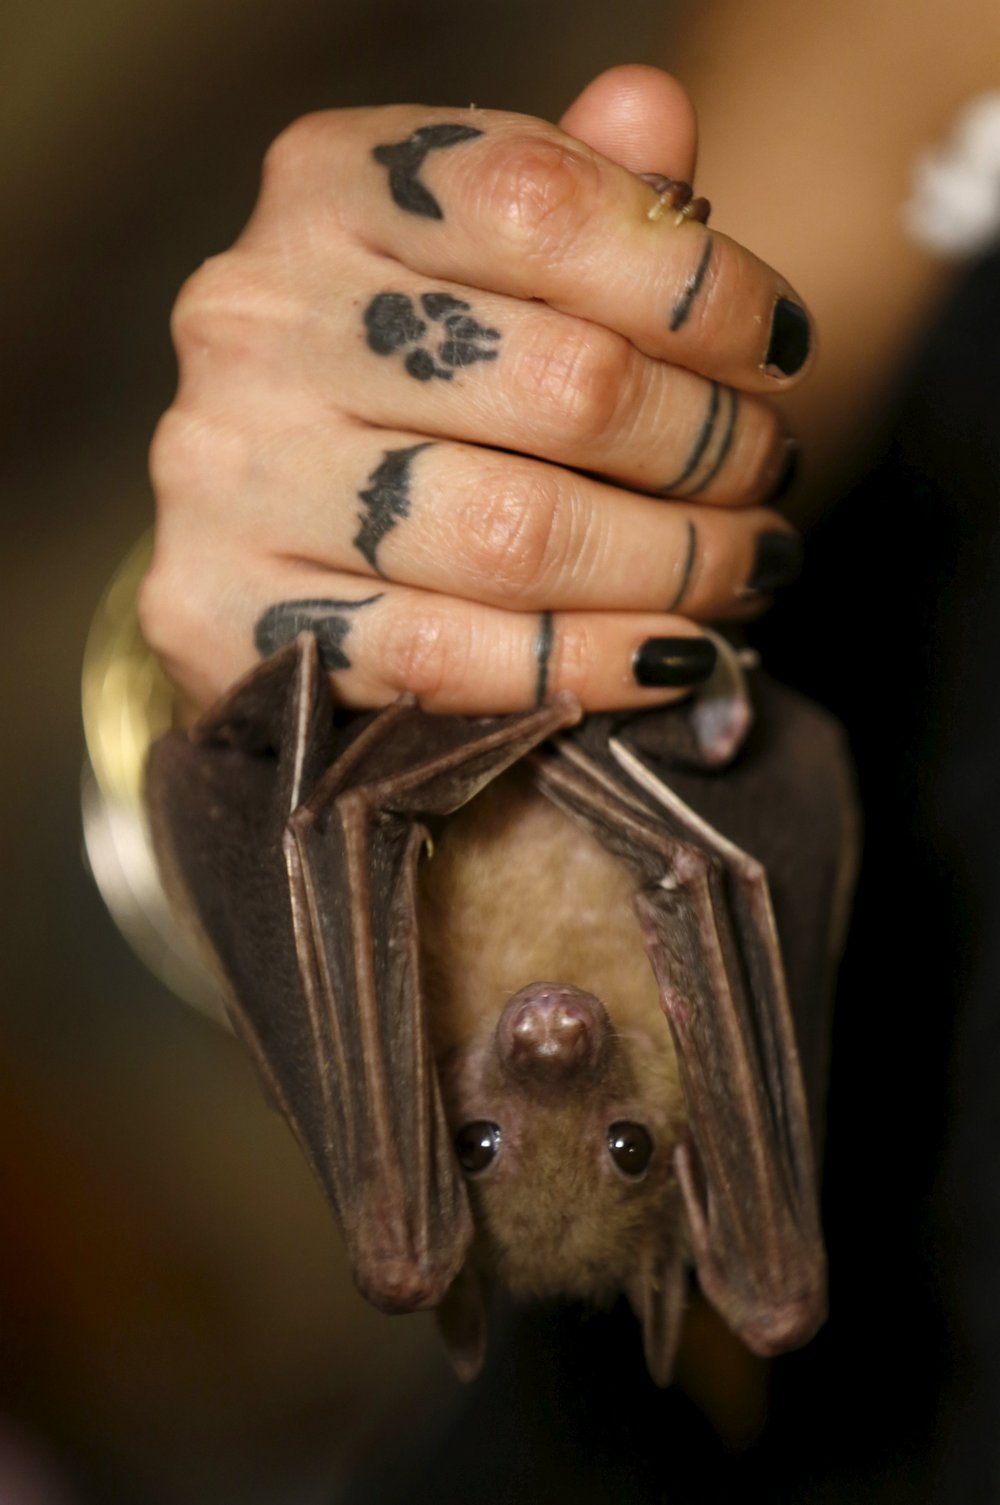 Israeli woman, Lifschitz, holds an injured Egyptian fruit bat at her home in Tel Aviv